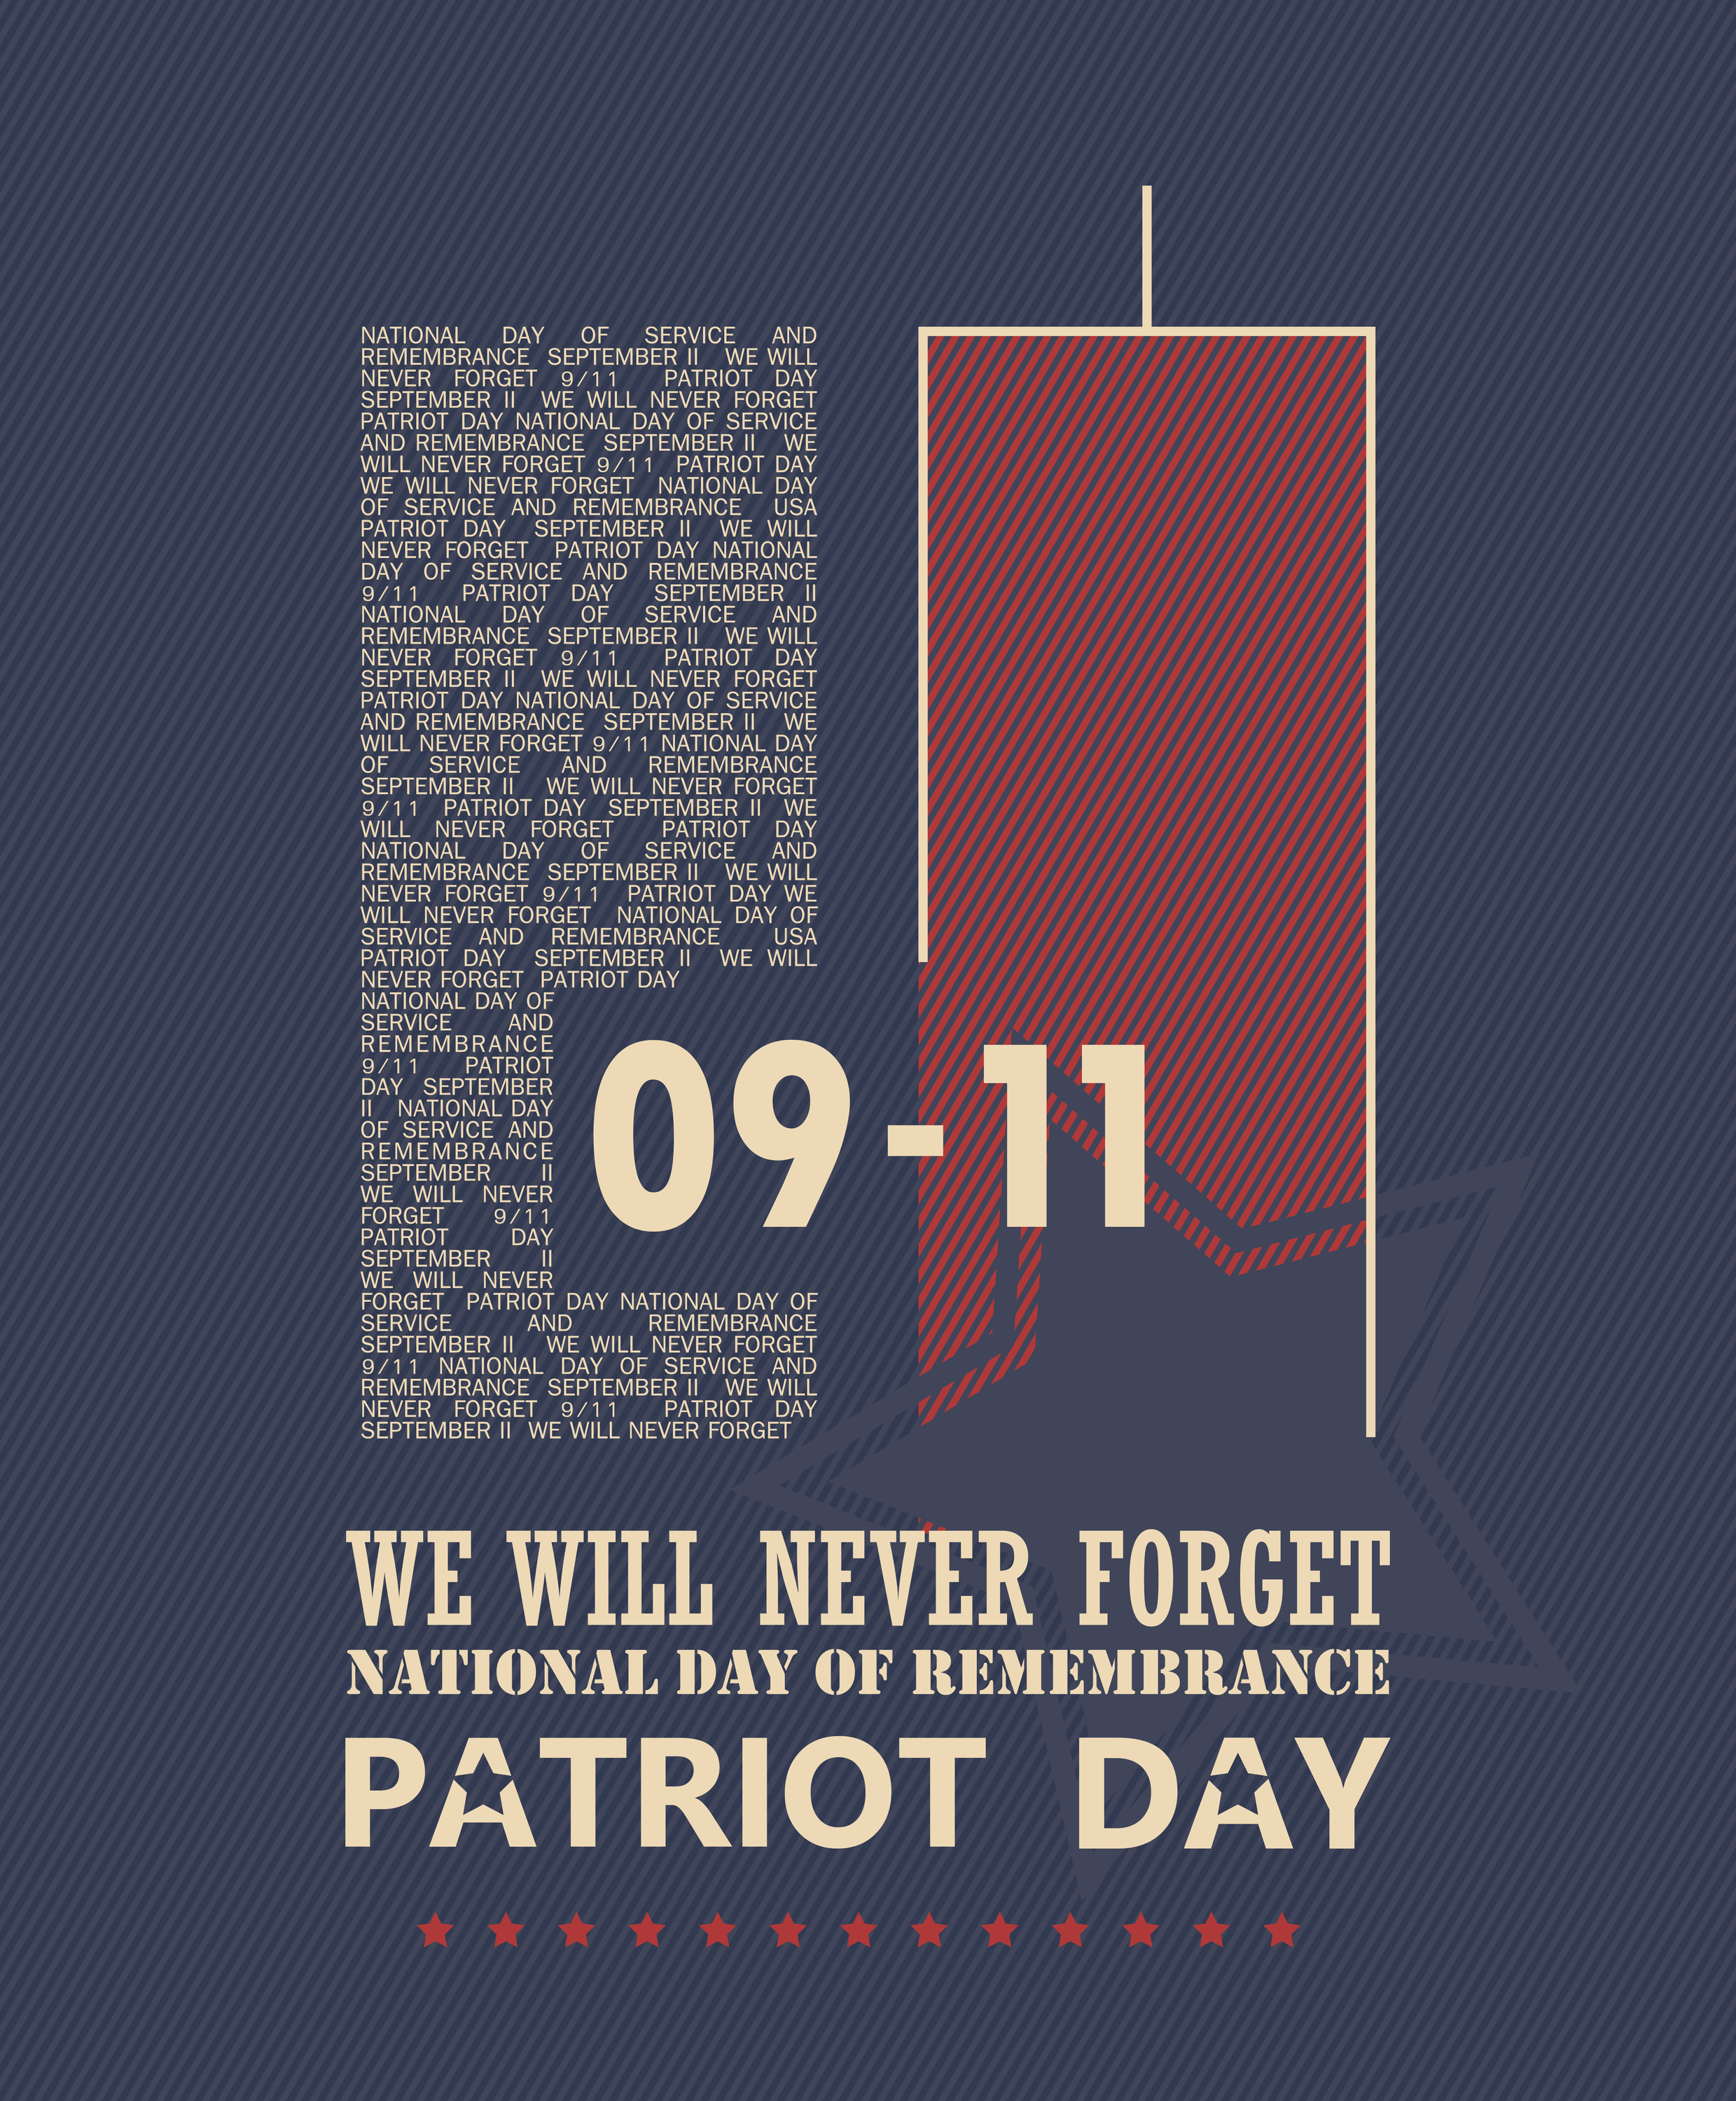 Patriot Day Remembering 9 11